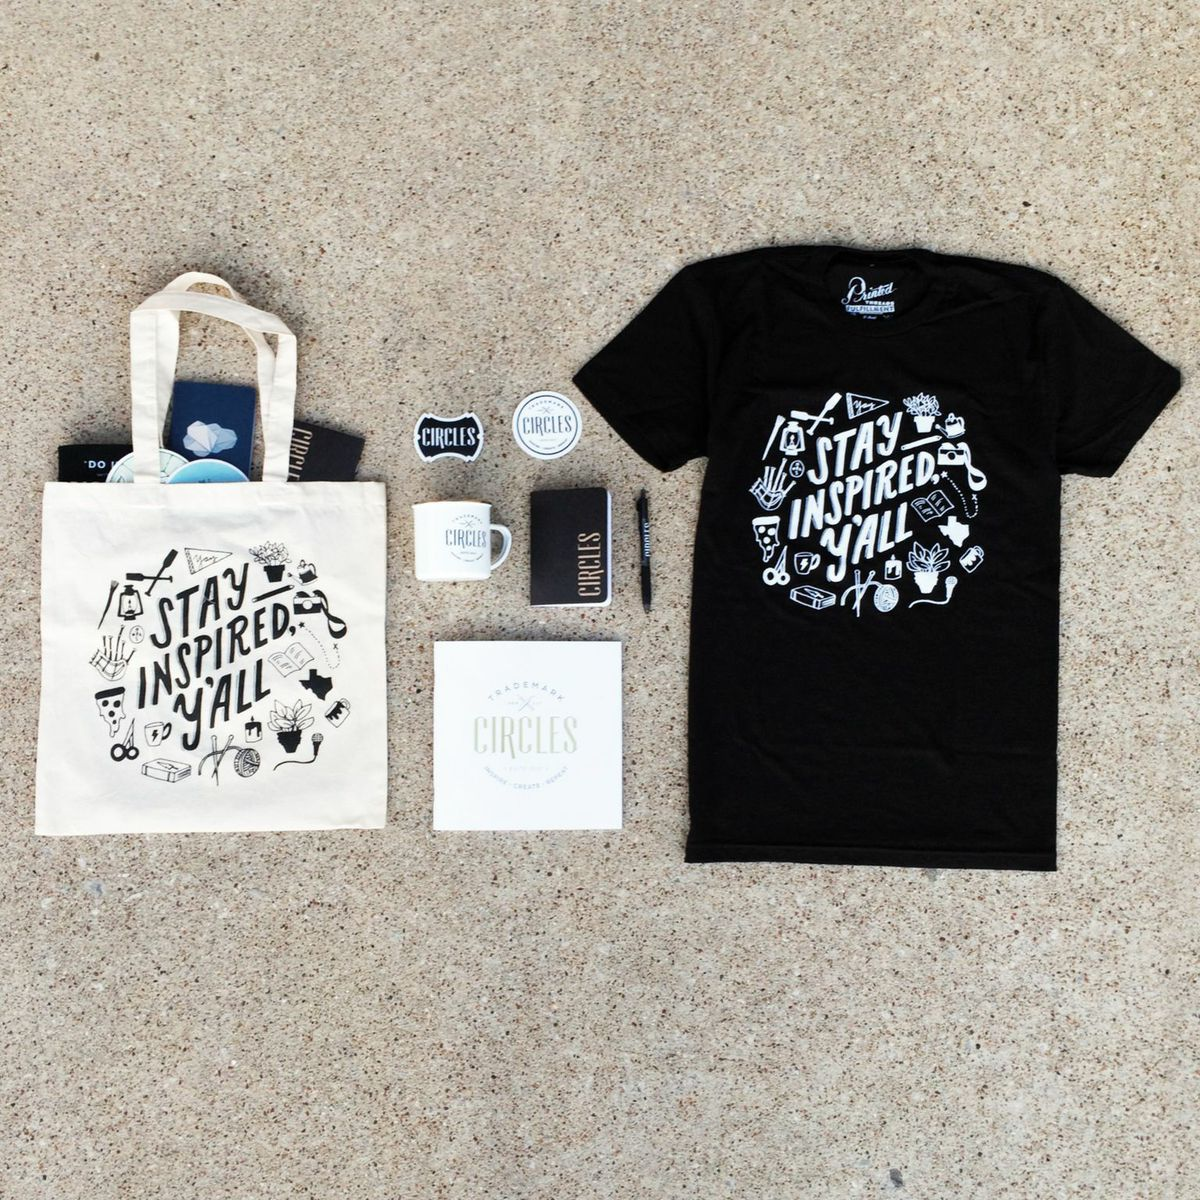 Circles Conference Merch